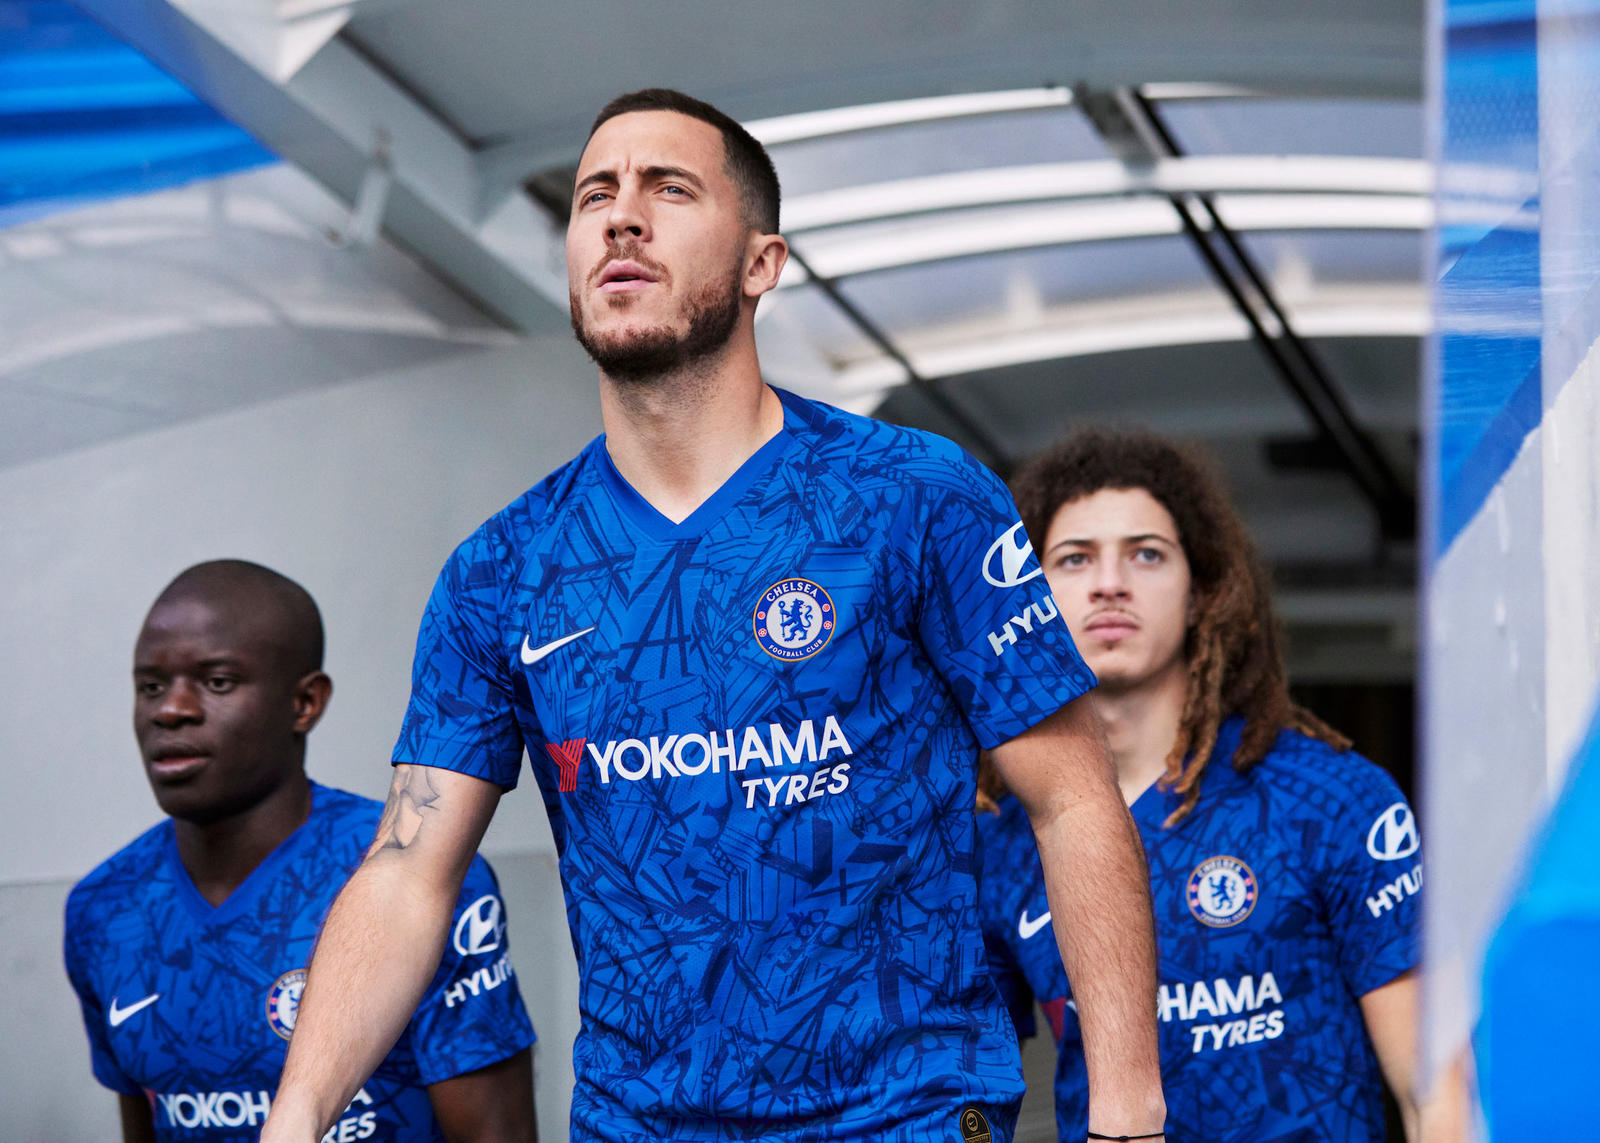 cheaper 8aa18 a7b92 Chelsea FC Home Kit 2019-20 - Nike News